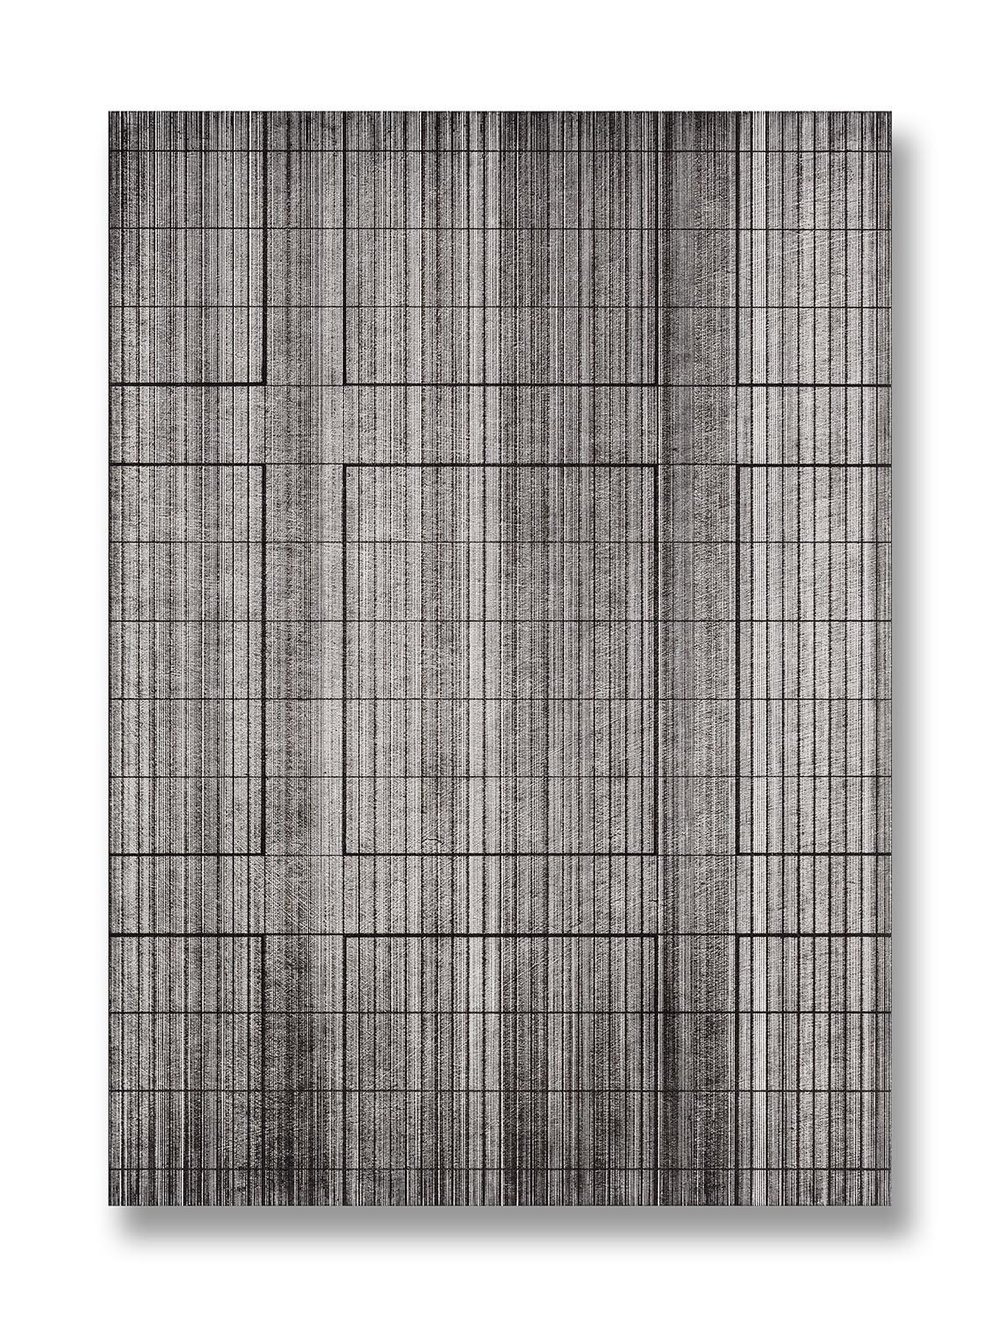 20.EunHyeKang_Meditation-No.20_Sumi-ink-drawing-on-Rice-Paper_70x50(cm)_2016.jpg